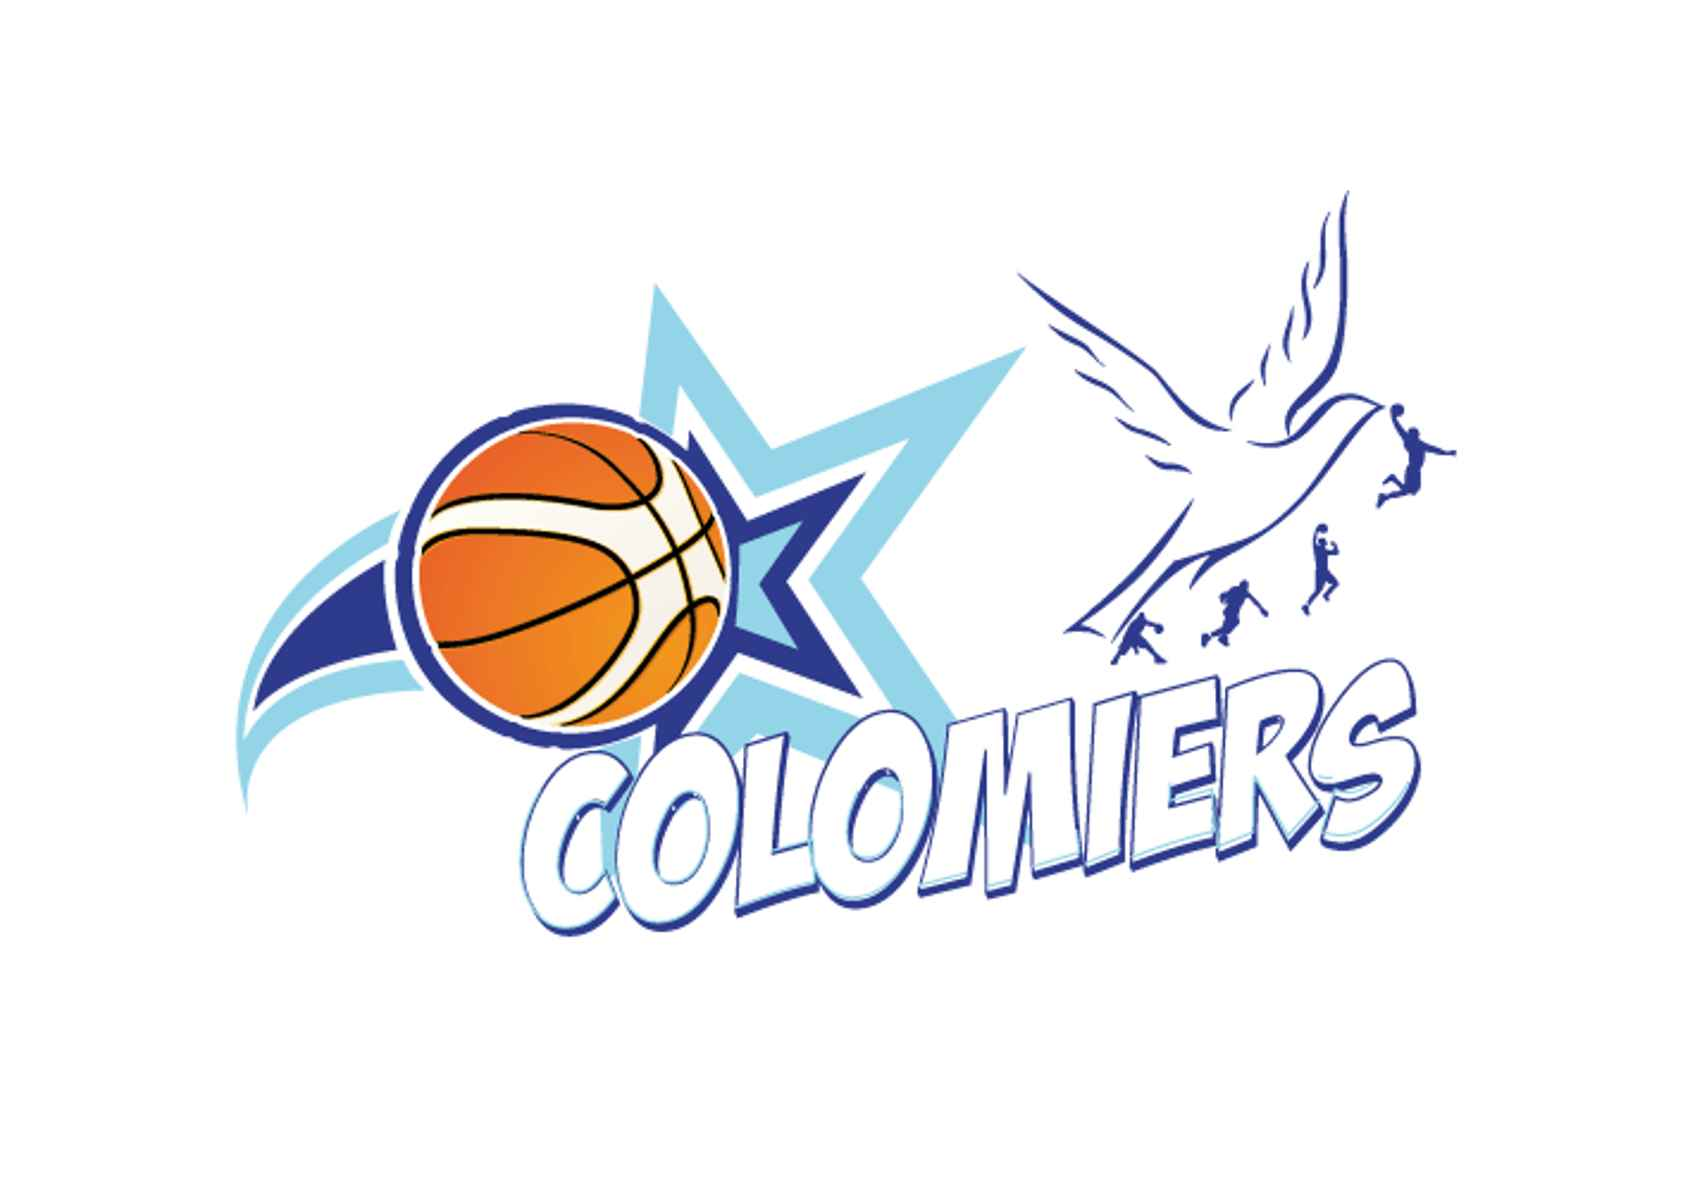 _copie-0_colomiers-logo-A5